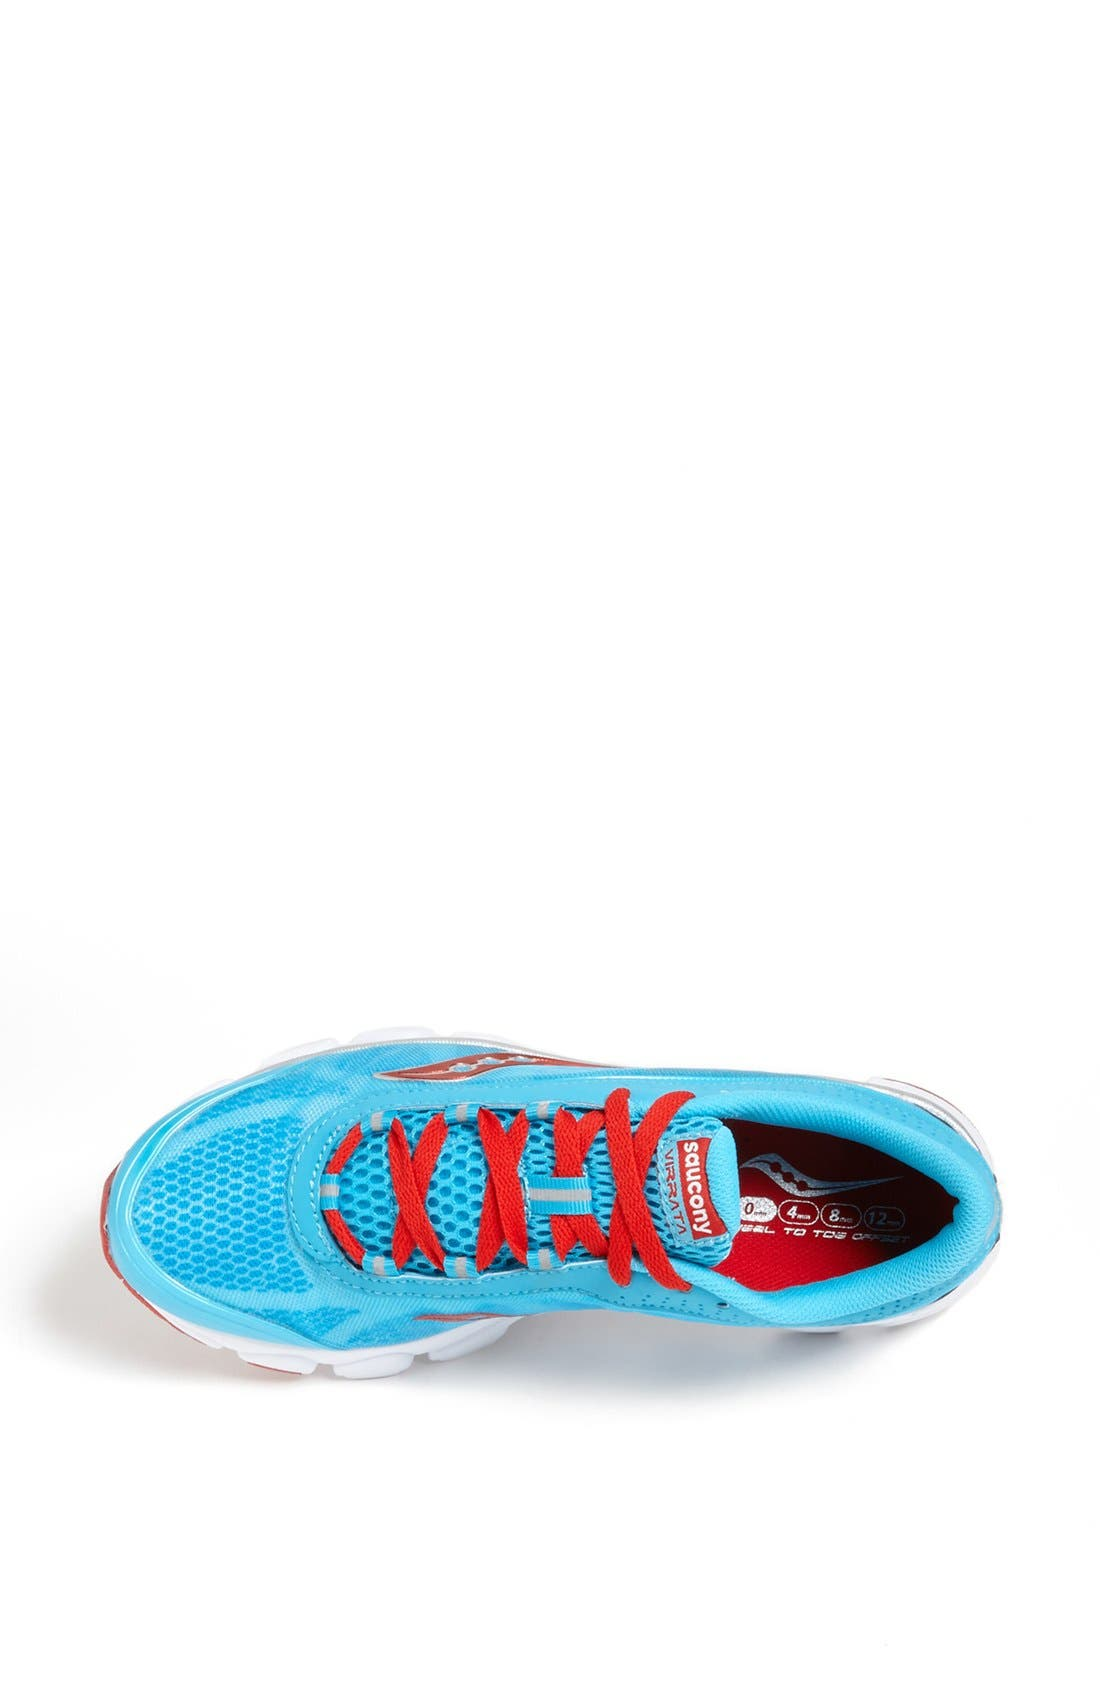 Alternate Image 3  - Saucony 'Virrata' Running Shoe (Women)(Regular Retail Price: $89.95)